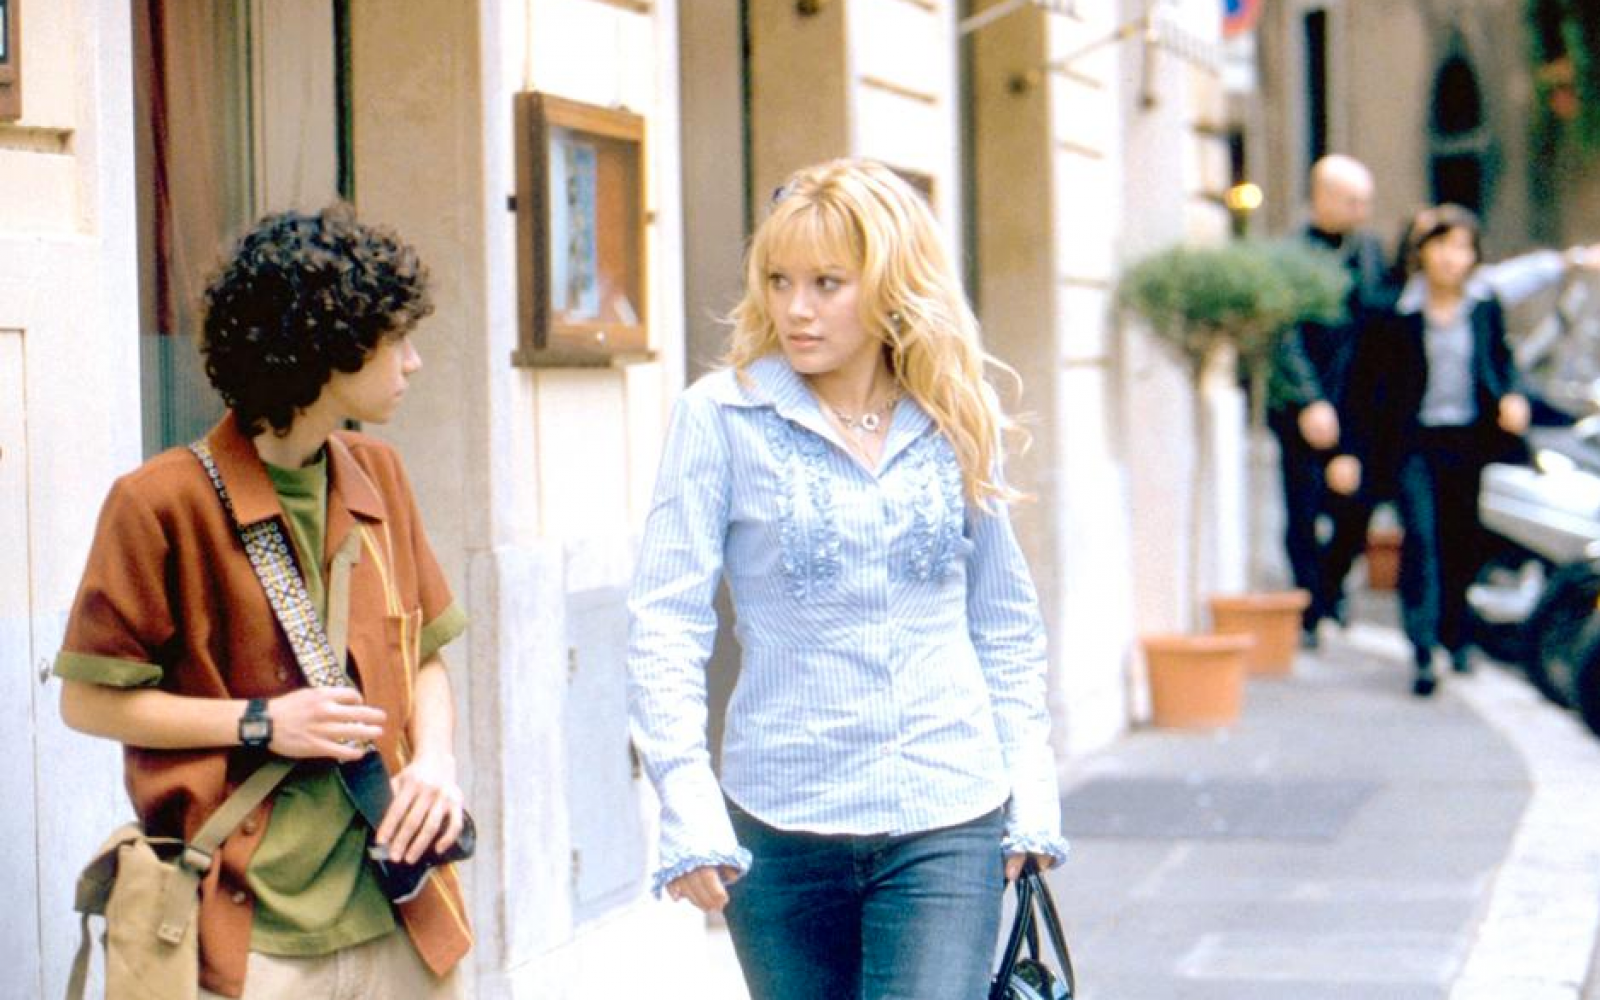 11 Lizzie And Gordo Moments That Had Us All Rooting For Him To Get Out Of The Friend-Zone